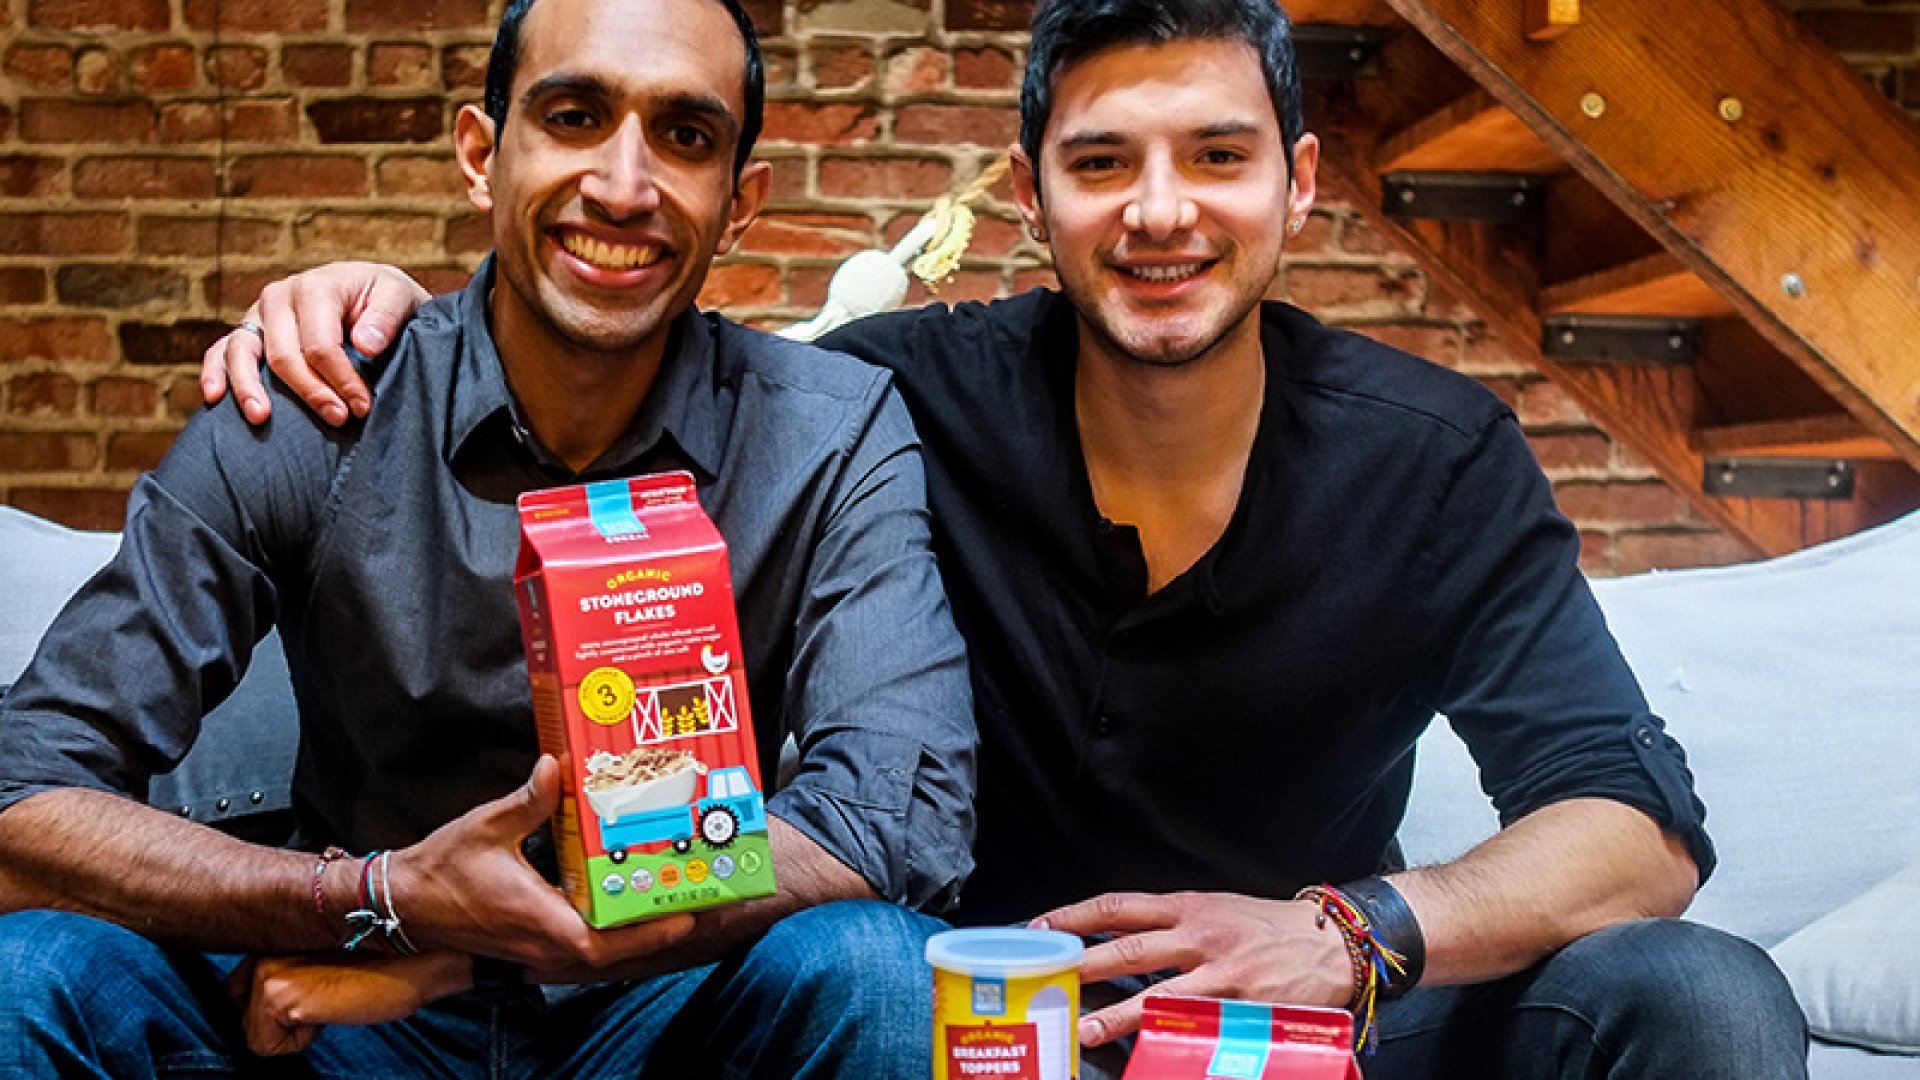 Back to the Roots co-founders Nikhil Arora and Alejandro Velez with their newest product, a breakfast cereal called Stoneground Flakes.